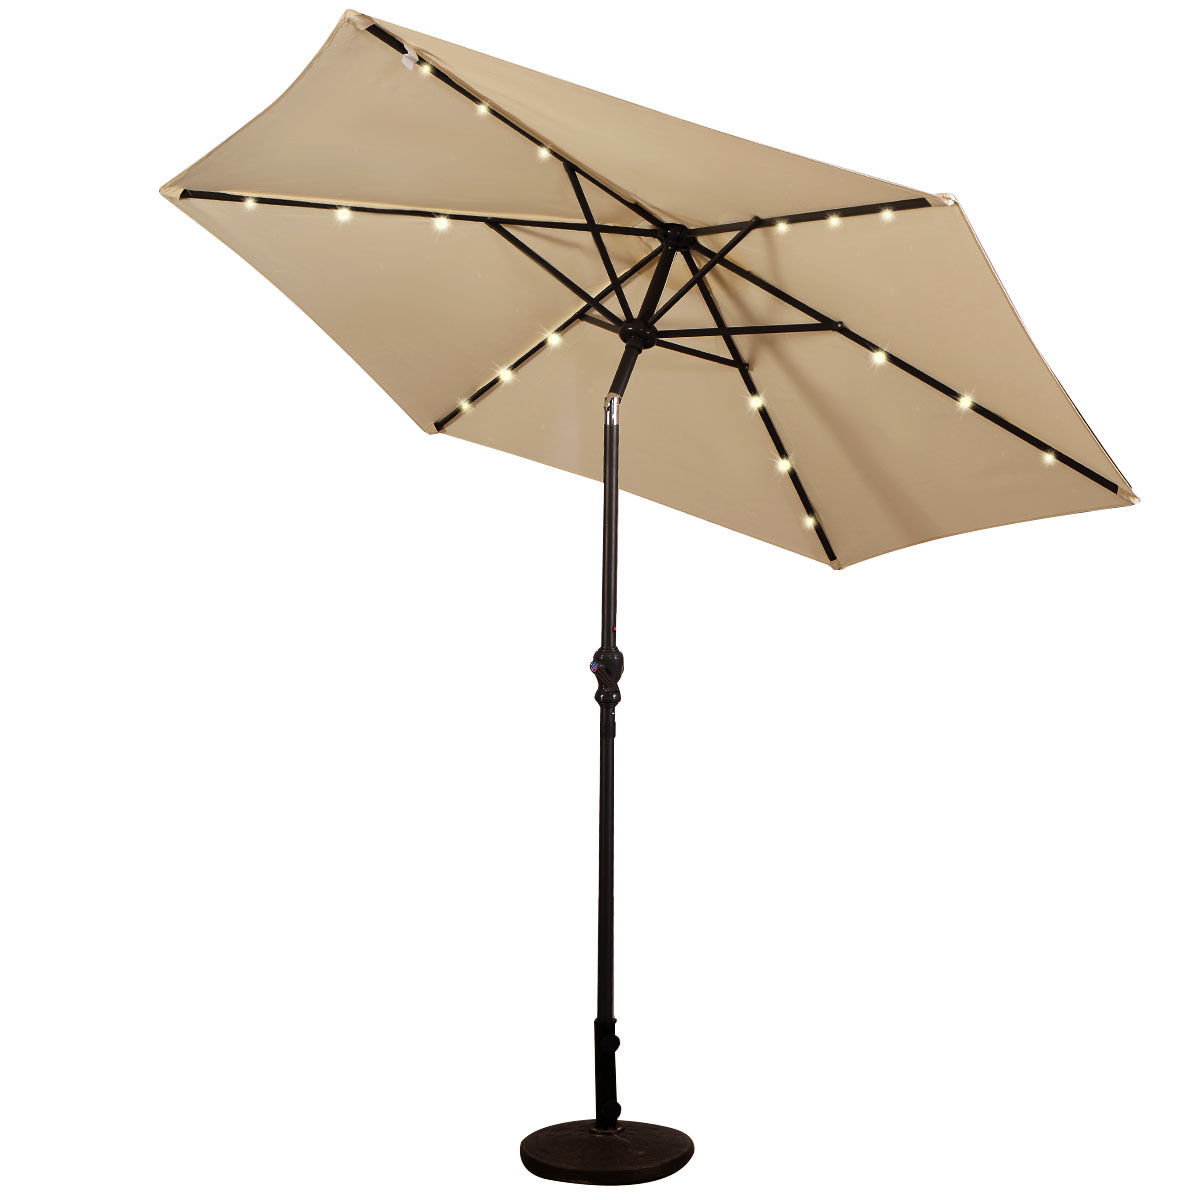 Leachville Market Umbrellas With Regard To Most Up To Date Details About Freeport Park Exmouth 9' Market Umbrella (View 15 of 20)